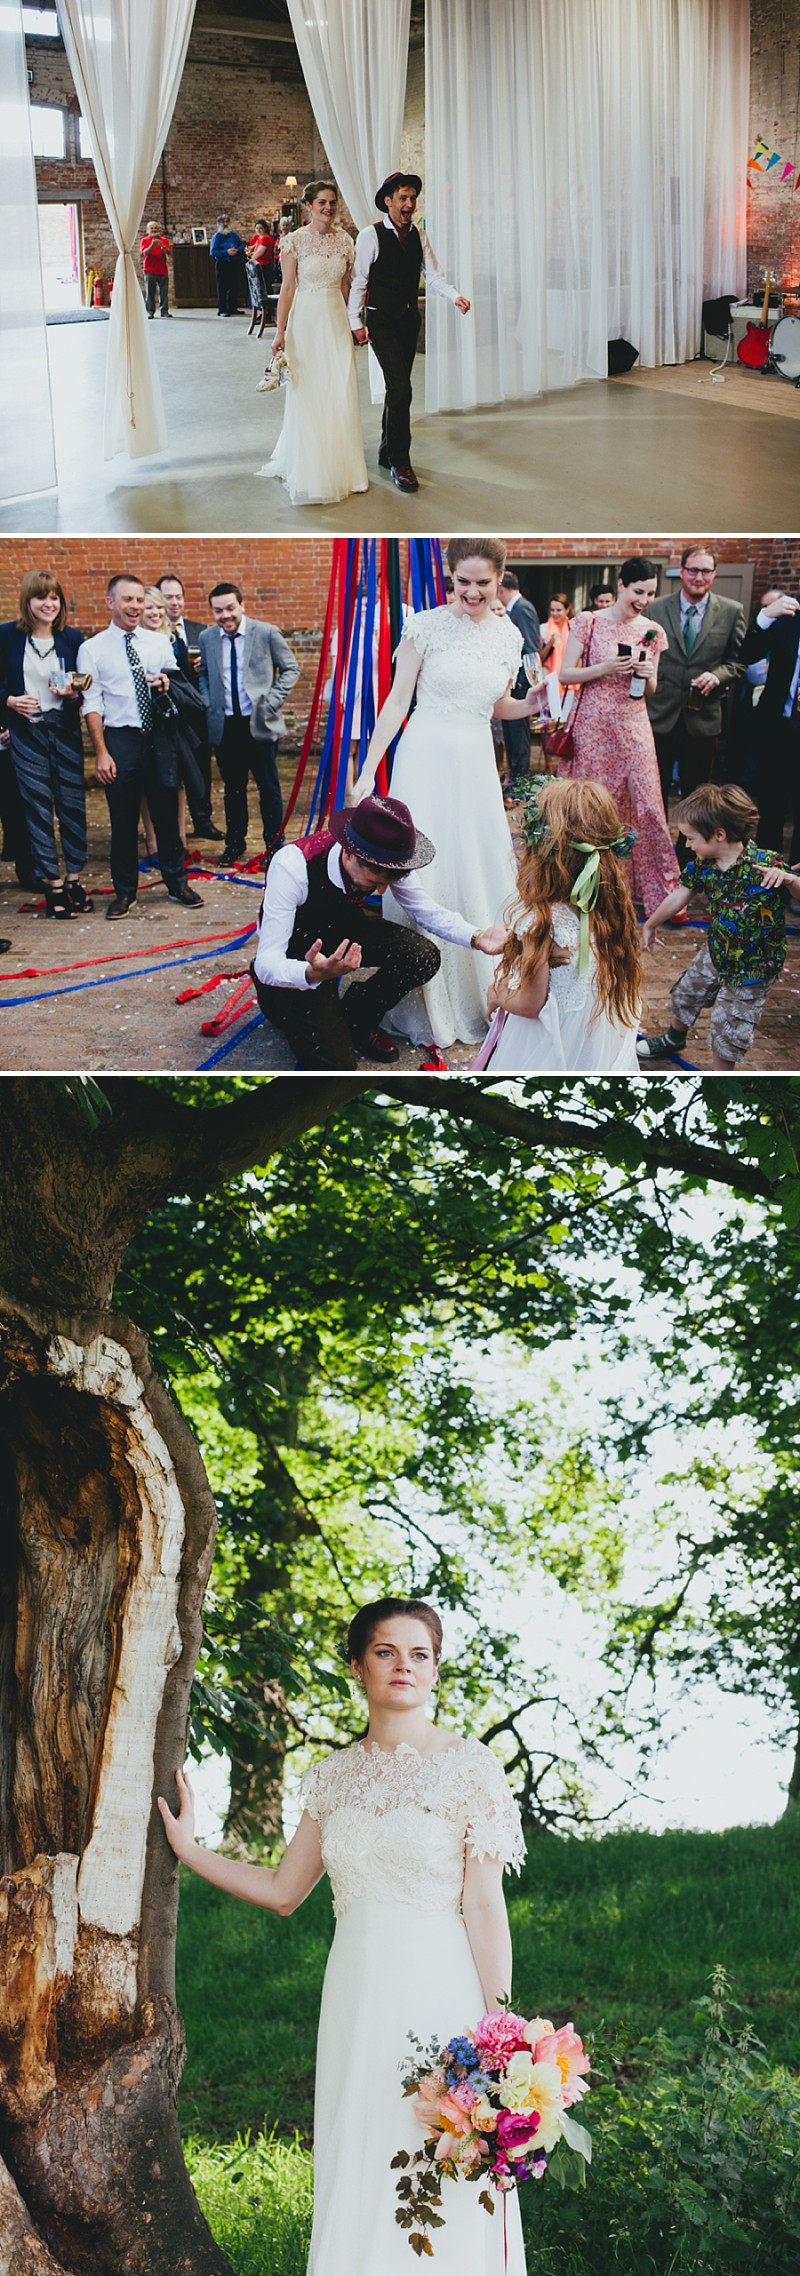 An alternative rock n roll wedding at Calke Abbey in Derbyshire with a bride in a Kula Tsurdiu gown and the most beautiful flowers by Honeysuckle and Castle_0212